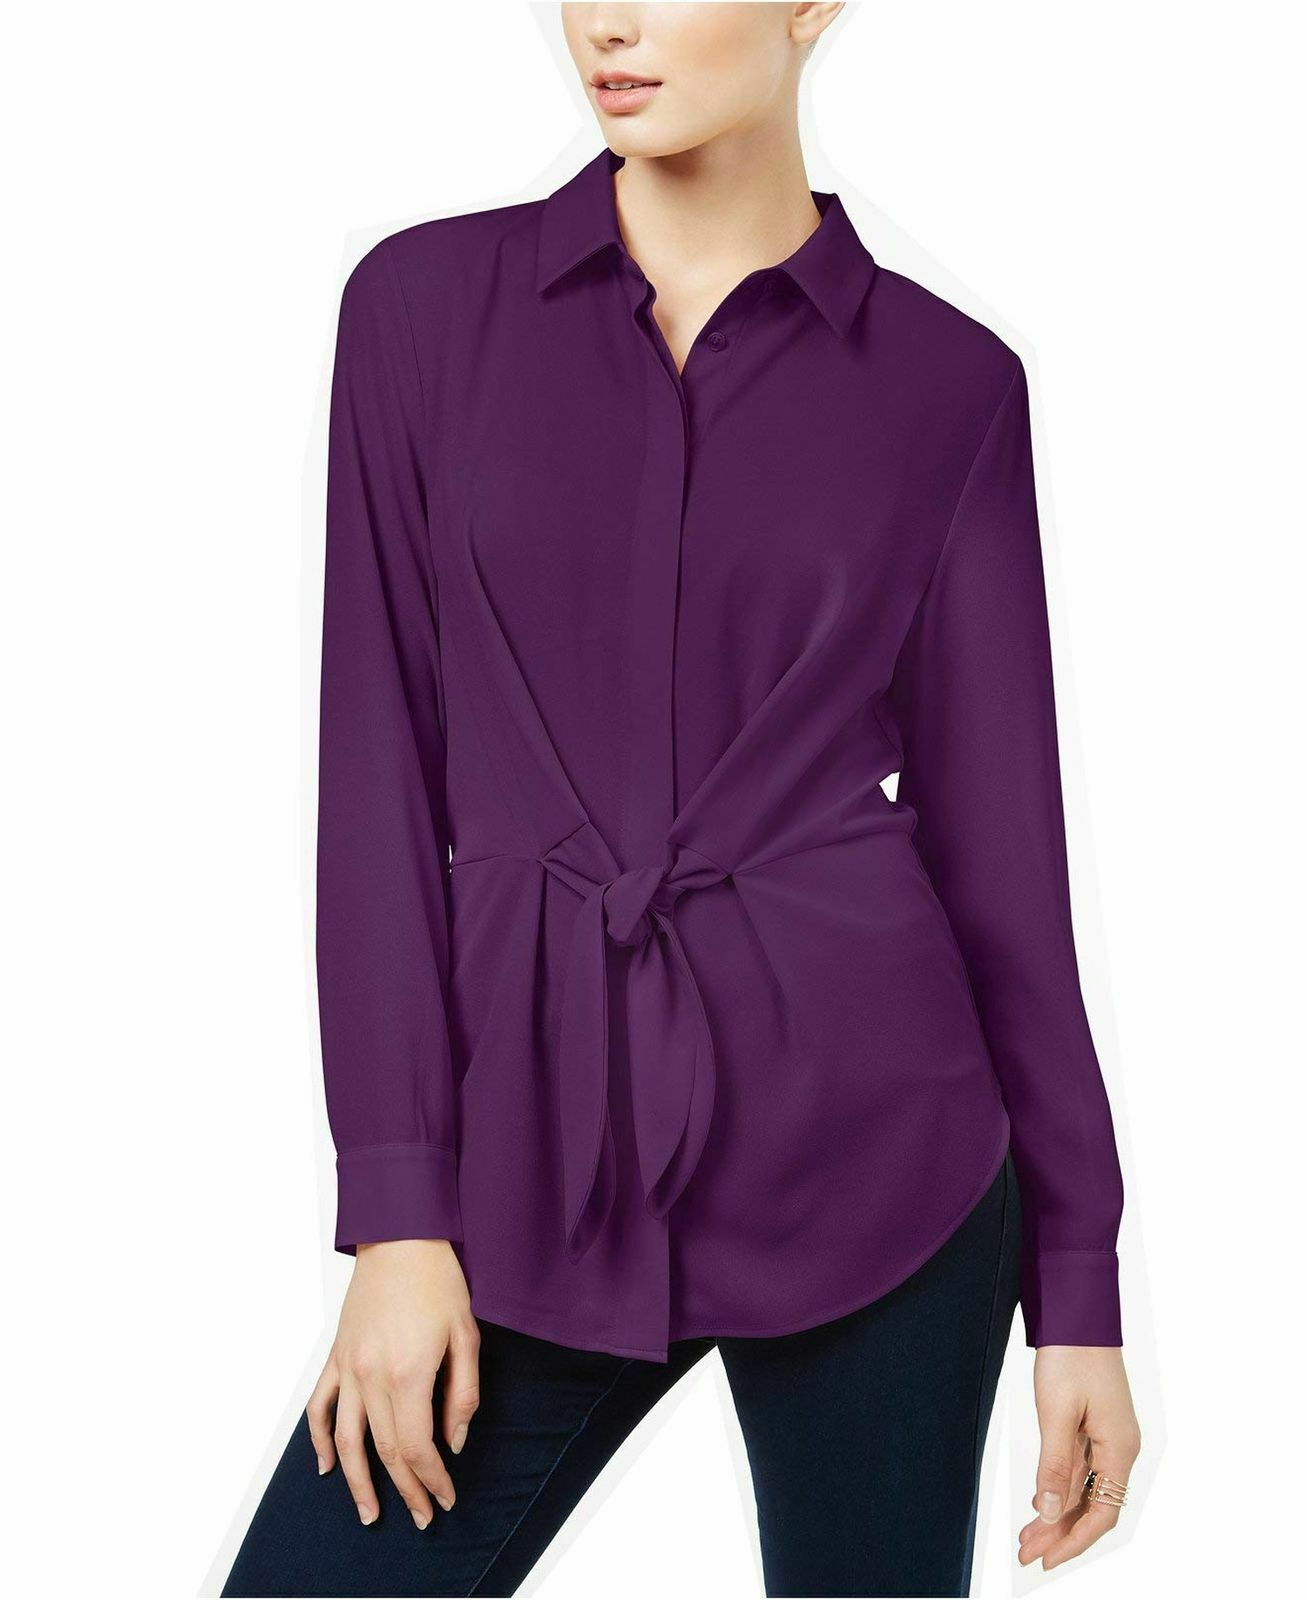 INC International Concepts Tie-Front Shirt lila Paradise S